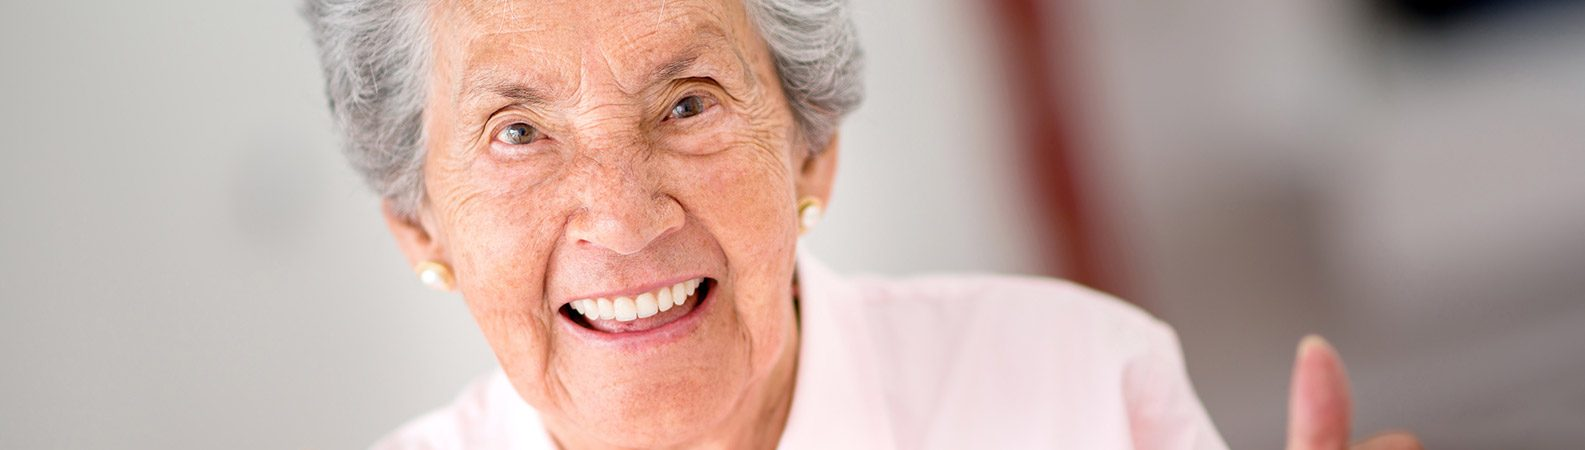 Repair Damaged Teeth With Full-Mouth Reconstruction